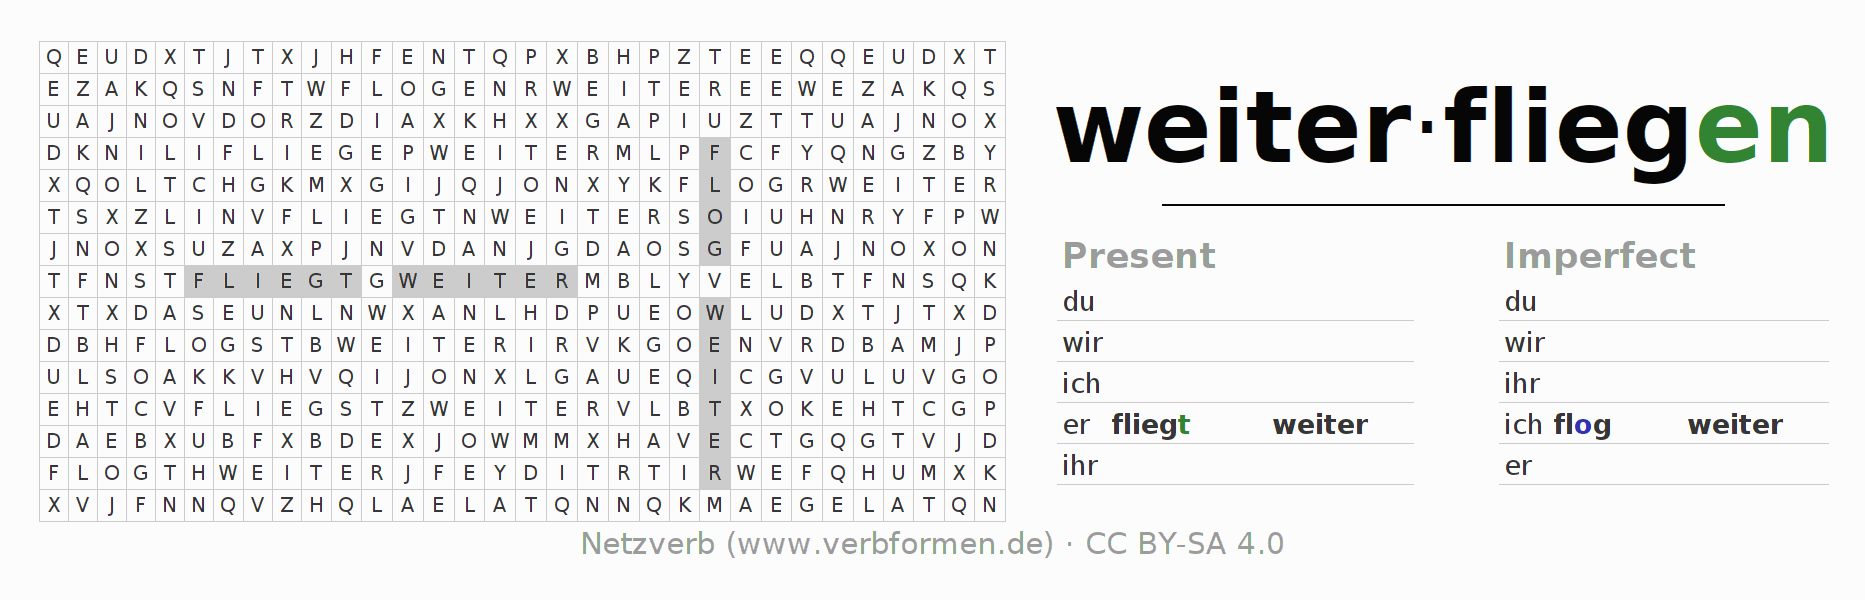 Word search puzzle for the conjugation of the verb weiterfliegen